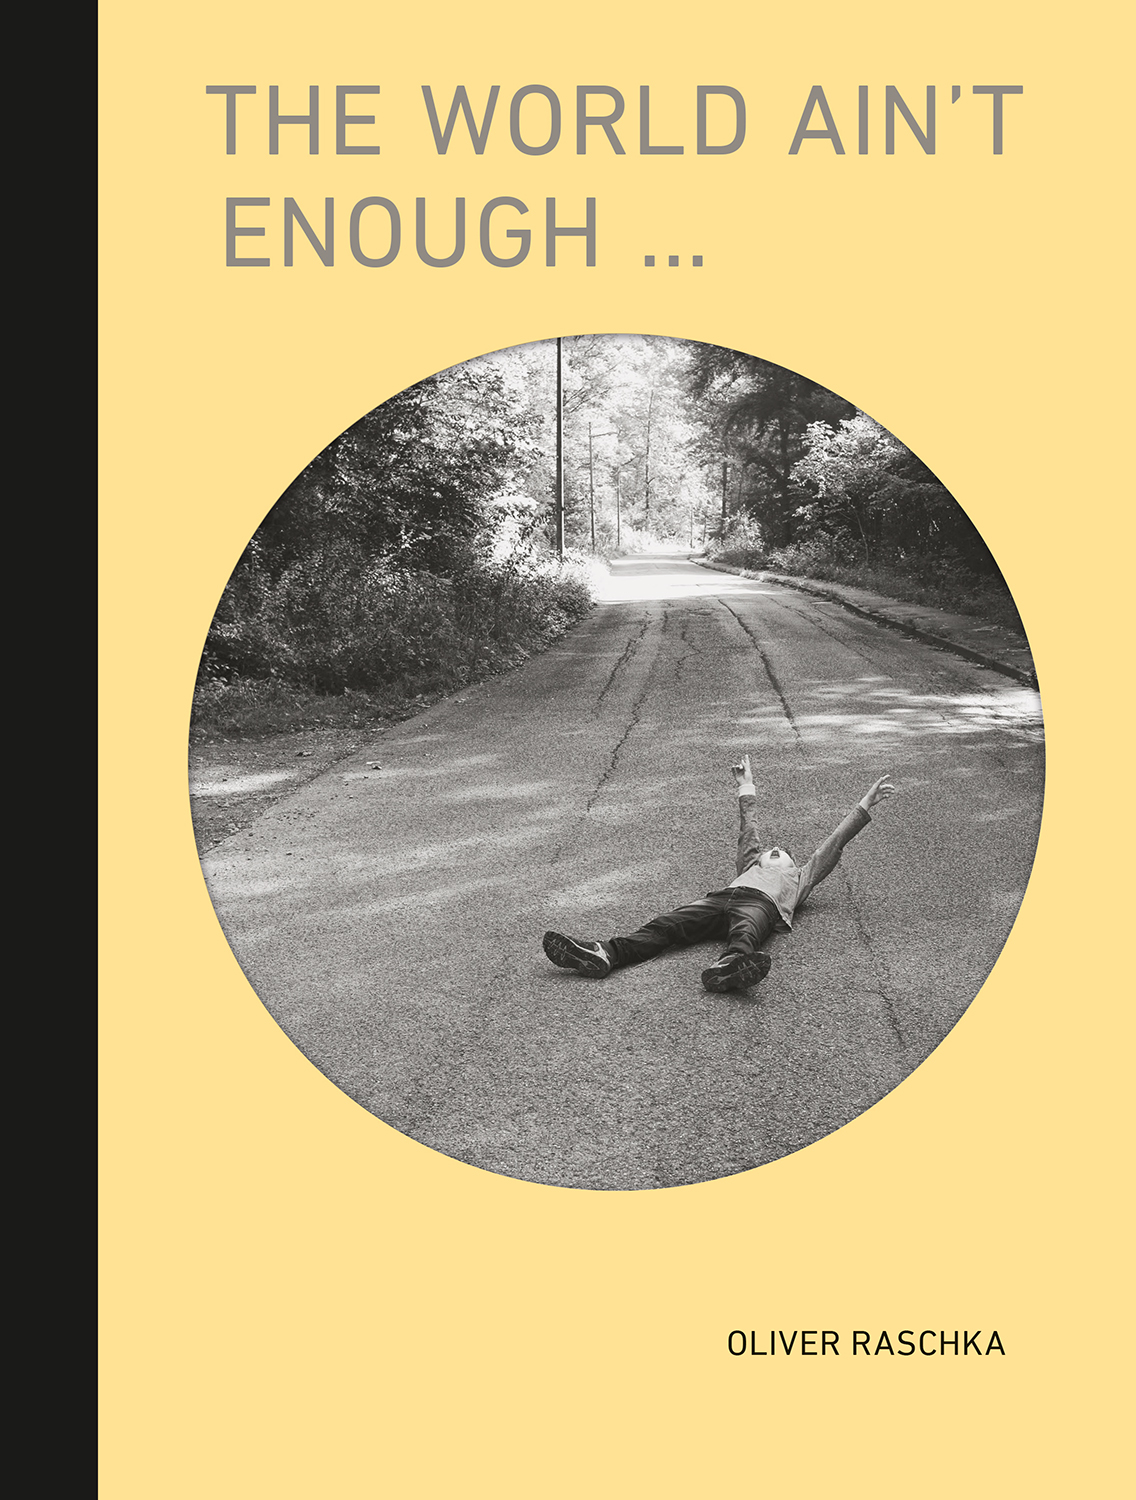 The World Ain't Enough book cover